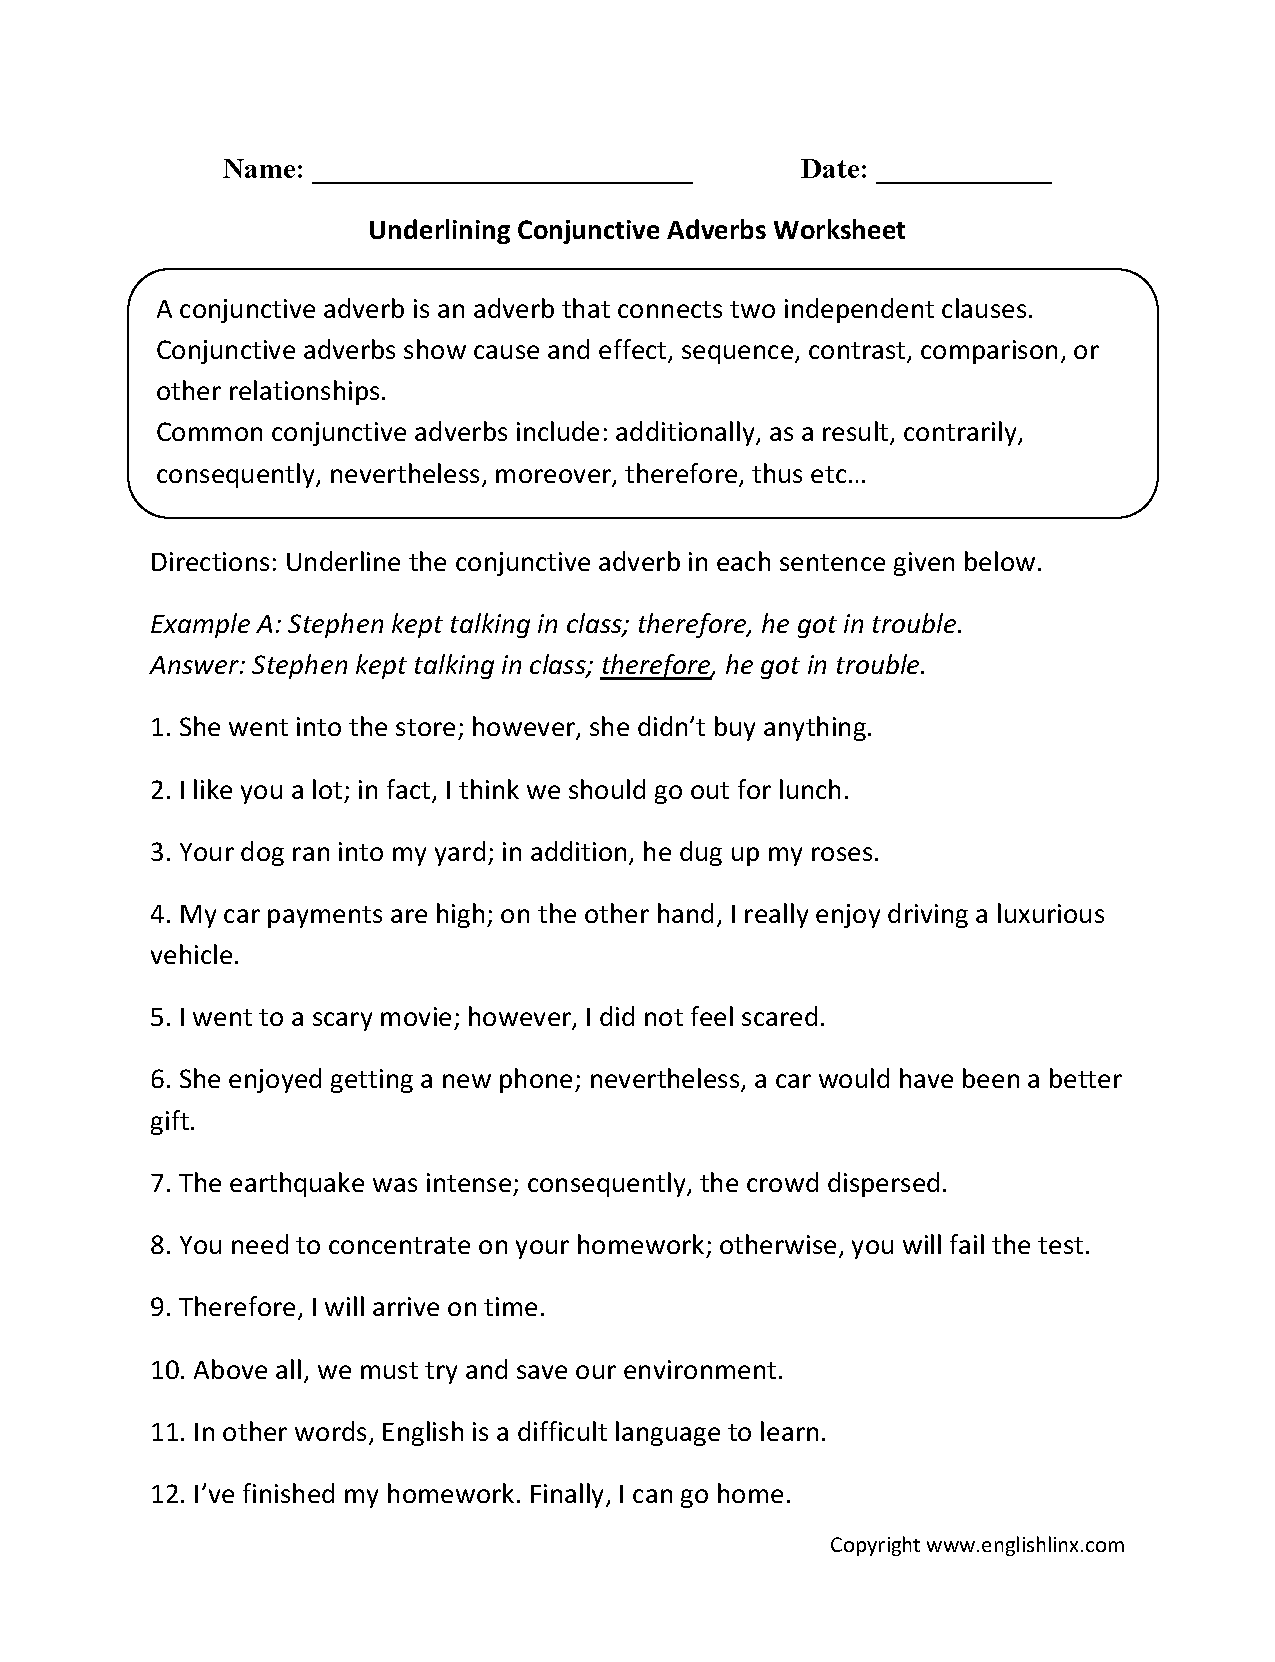 Aldiablosus  Inspiring Englishlinxcom  Conjunctions Worksheets With Heavenly Worksheet With Lovely Manuscript Handwriting Practice Worksheets Also Long A And Short A Worksheets In Addition Halloween Activities Worksheets And Reading And Writing Numbers Worksheet As Well As Graph Ordered Pairs Worksheet Additionally Printable Division Worksheets For Th Grade From Englishlinxcom With Aldiablosus  Heavenly Englishlinxcom  Conjunctions Worksheets With Lovely Worksheet And Inspiring Manuscript Handwriting Practice Worksheets Also Long A And Short A Worksheets In Addition Halloween Activities Worksheets From Englishlinxcom